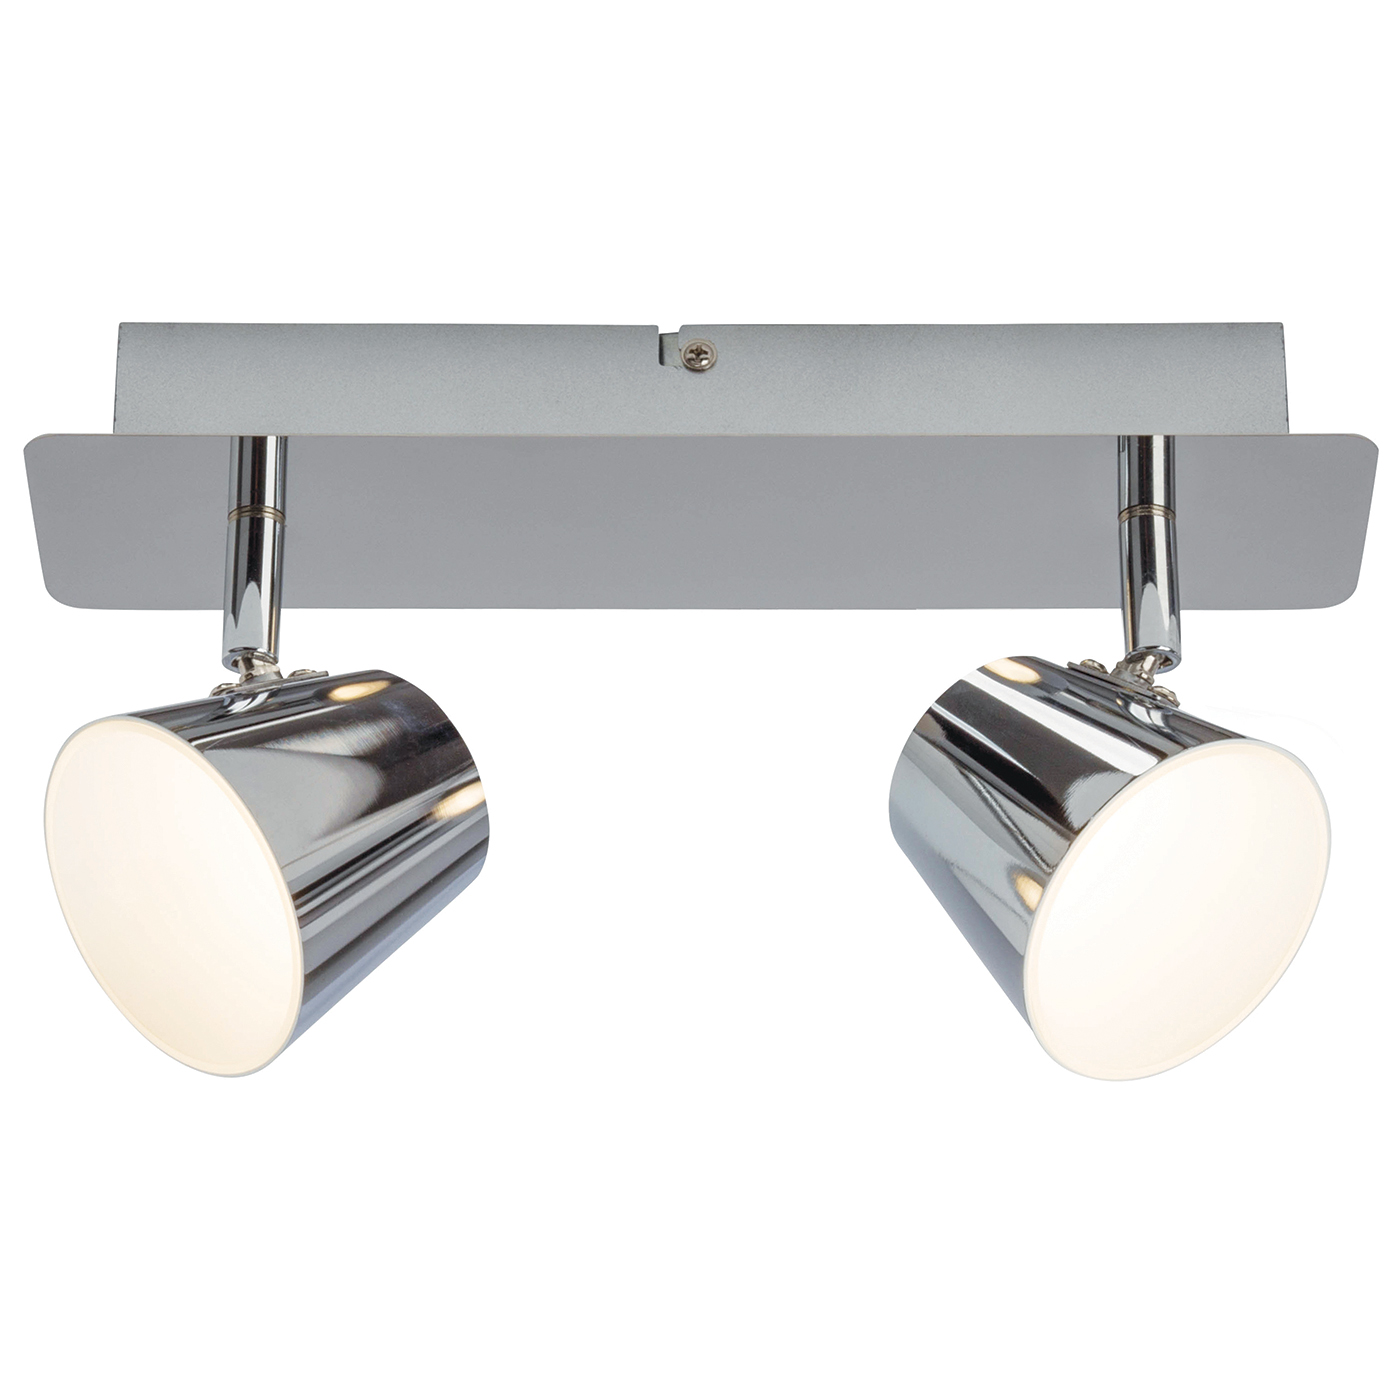 Endon Torsion ceiling spotlight plate 2x 5W Chrome effect plate frosted acrylic Thumbnail 1